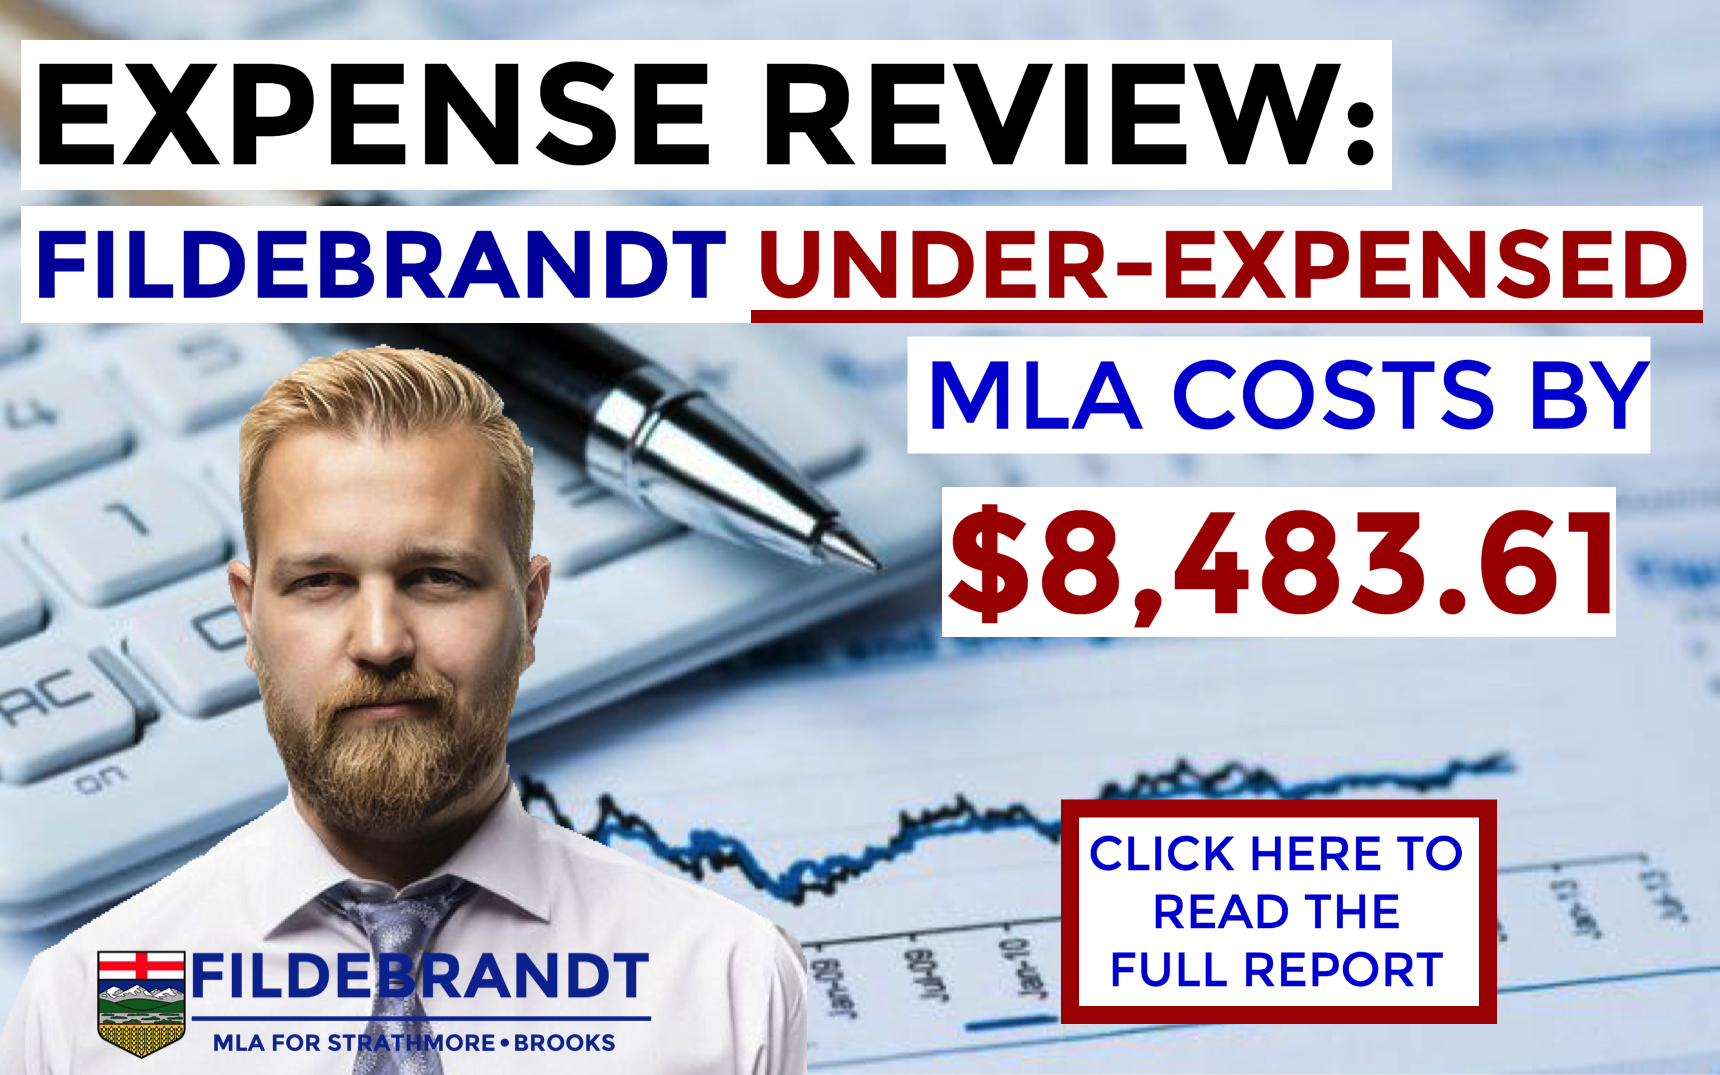 RELEASE: Review Finds Fildebrandt Under-Expensed $8,483, Calls for Full Audit of MLA Expenses